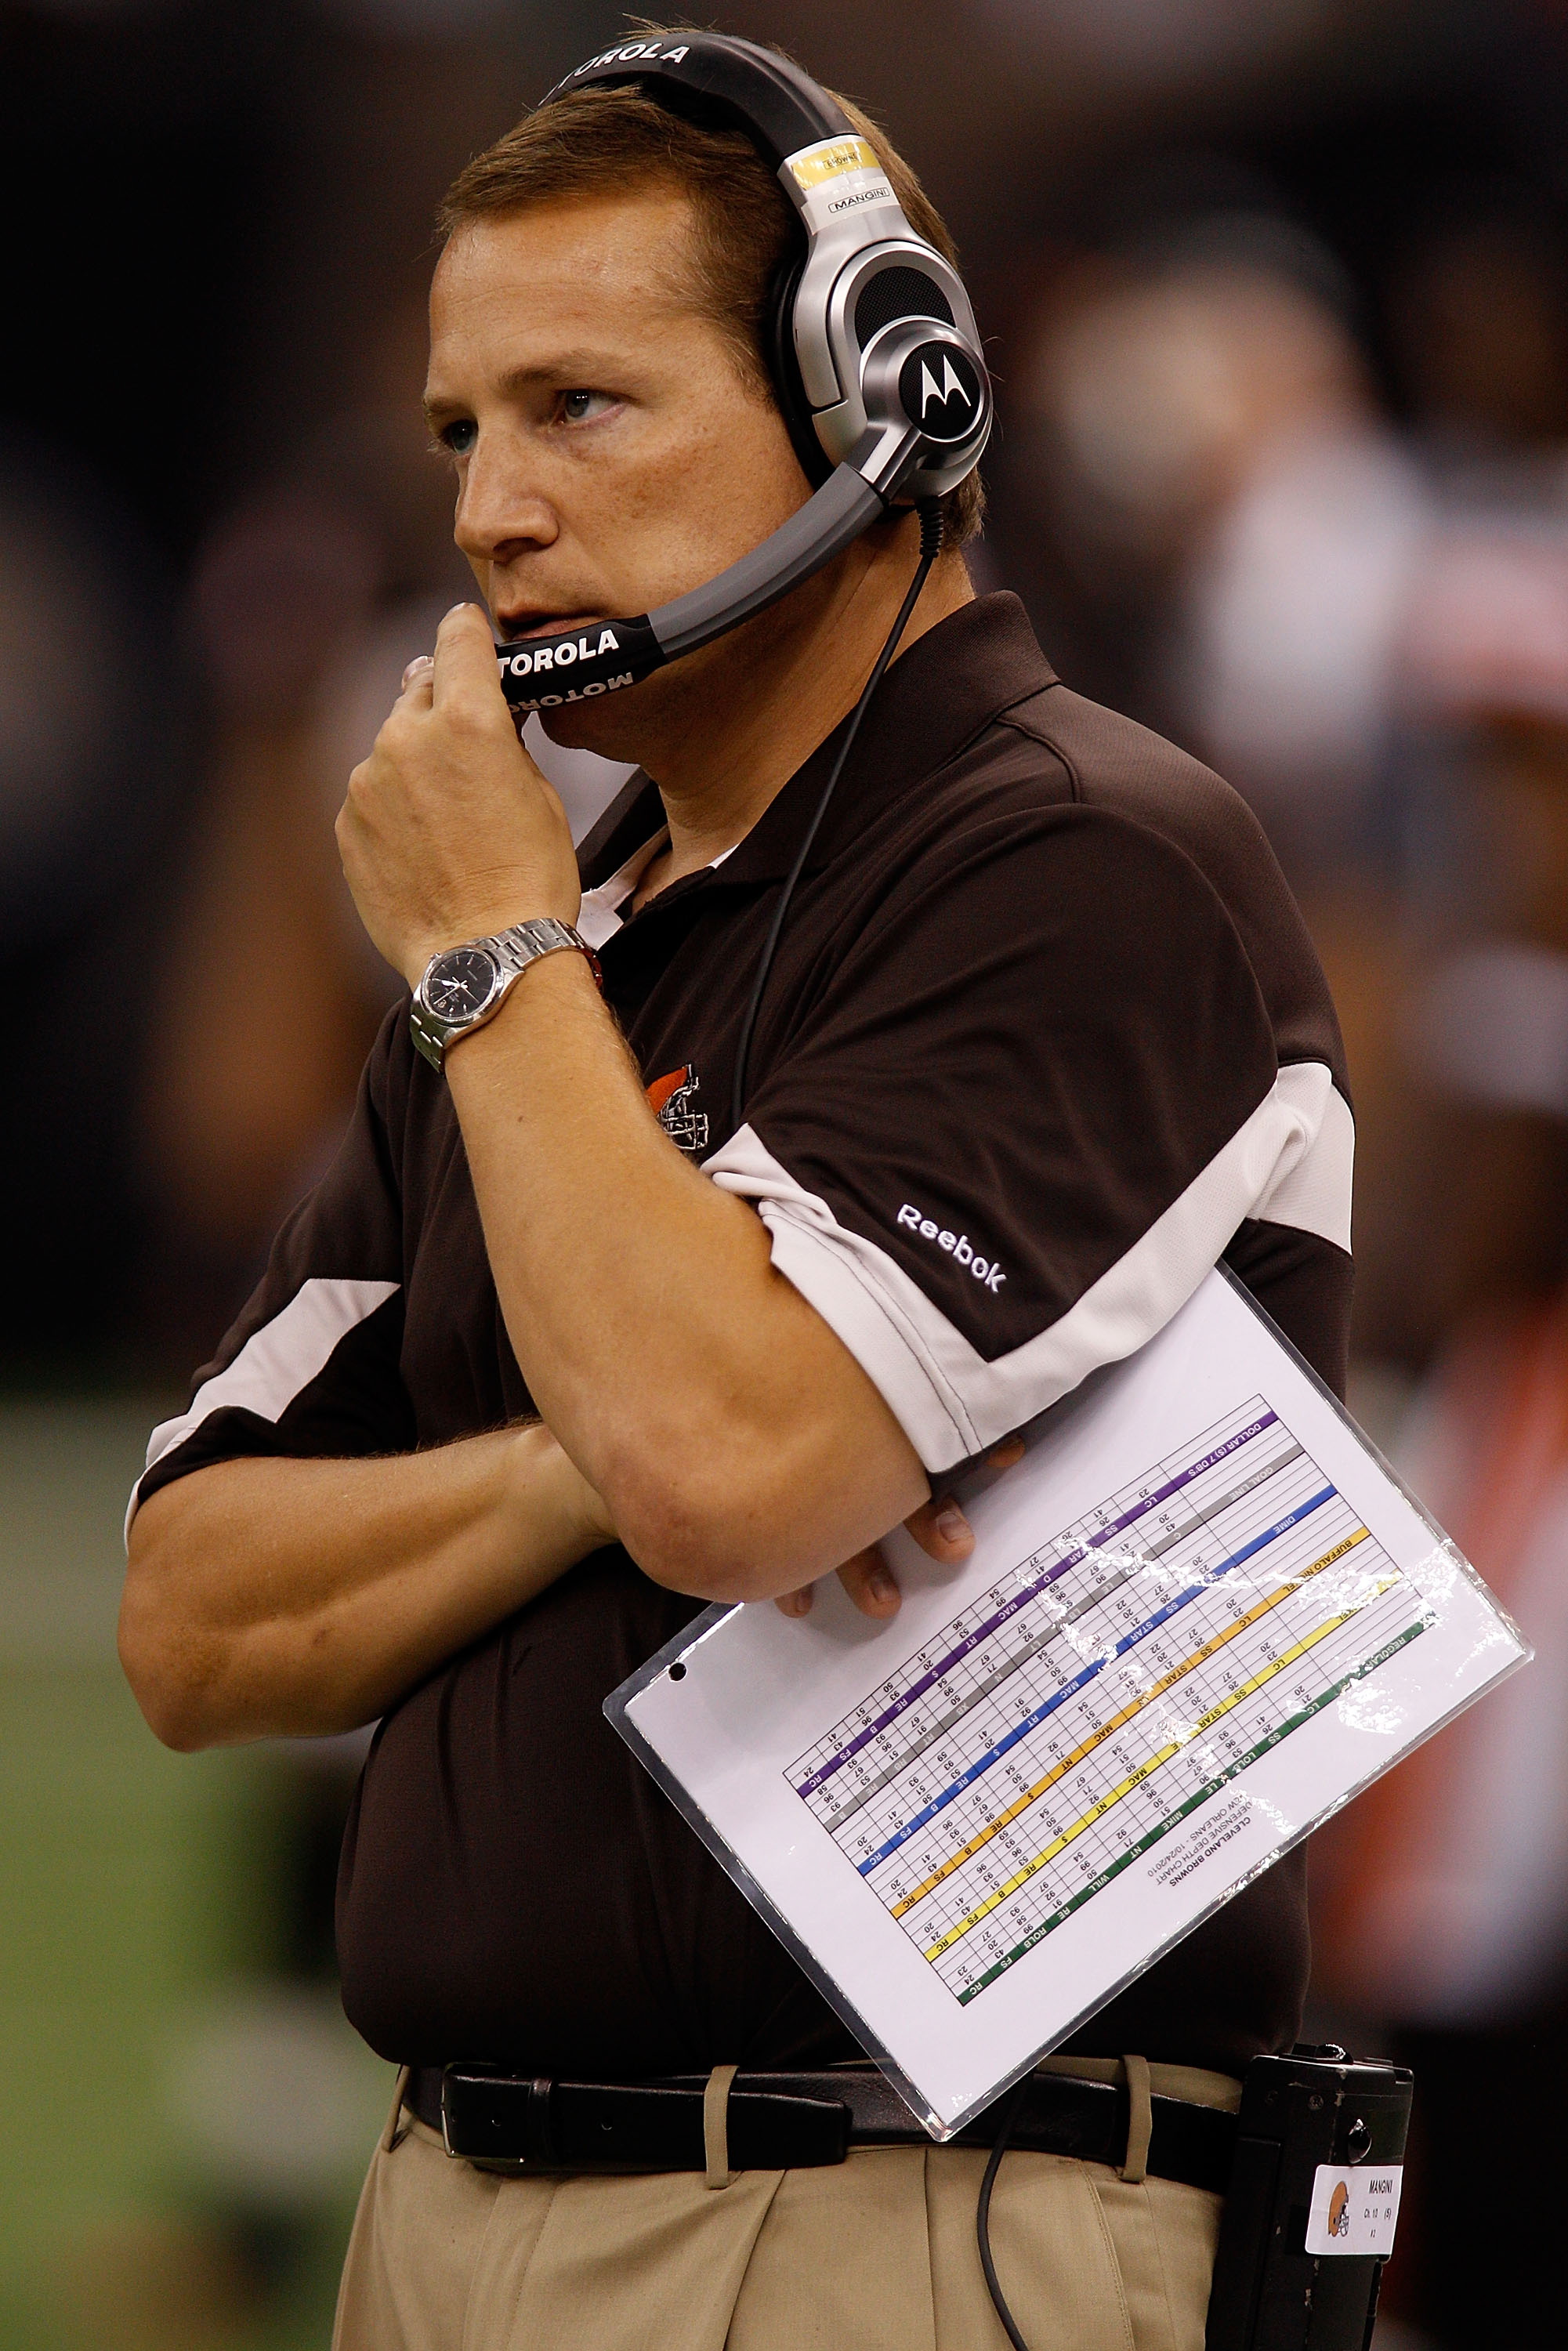 The Jets face Eric Mangini's Browns in Week 10